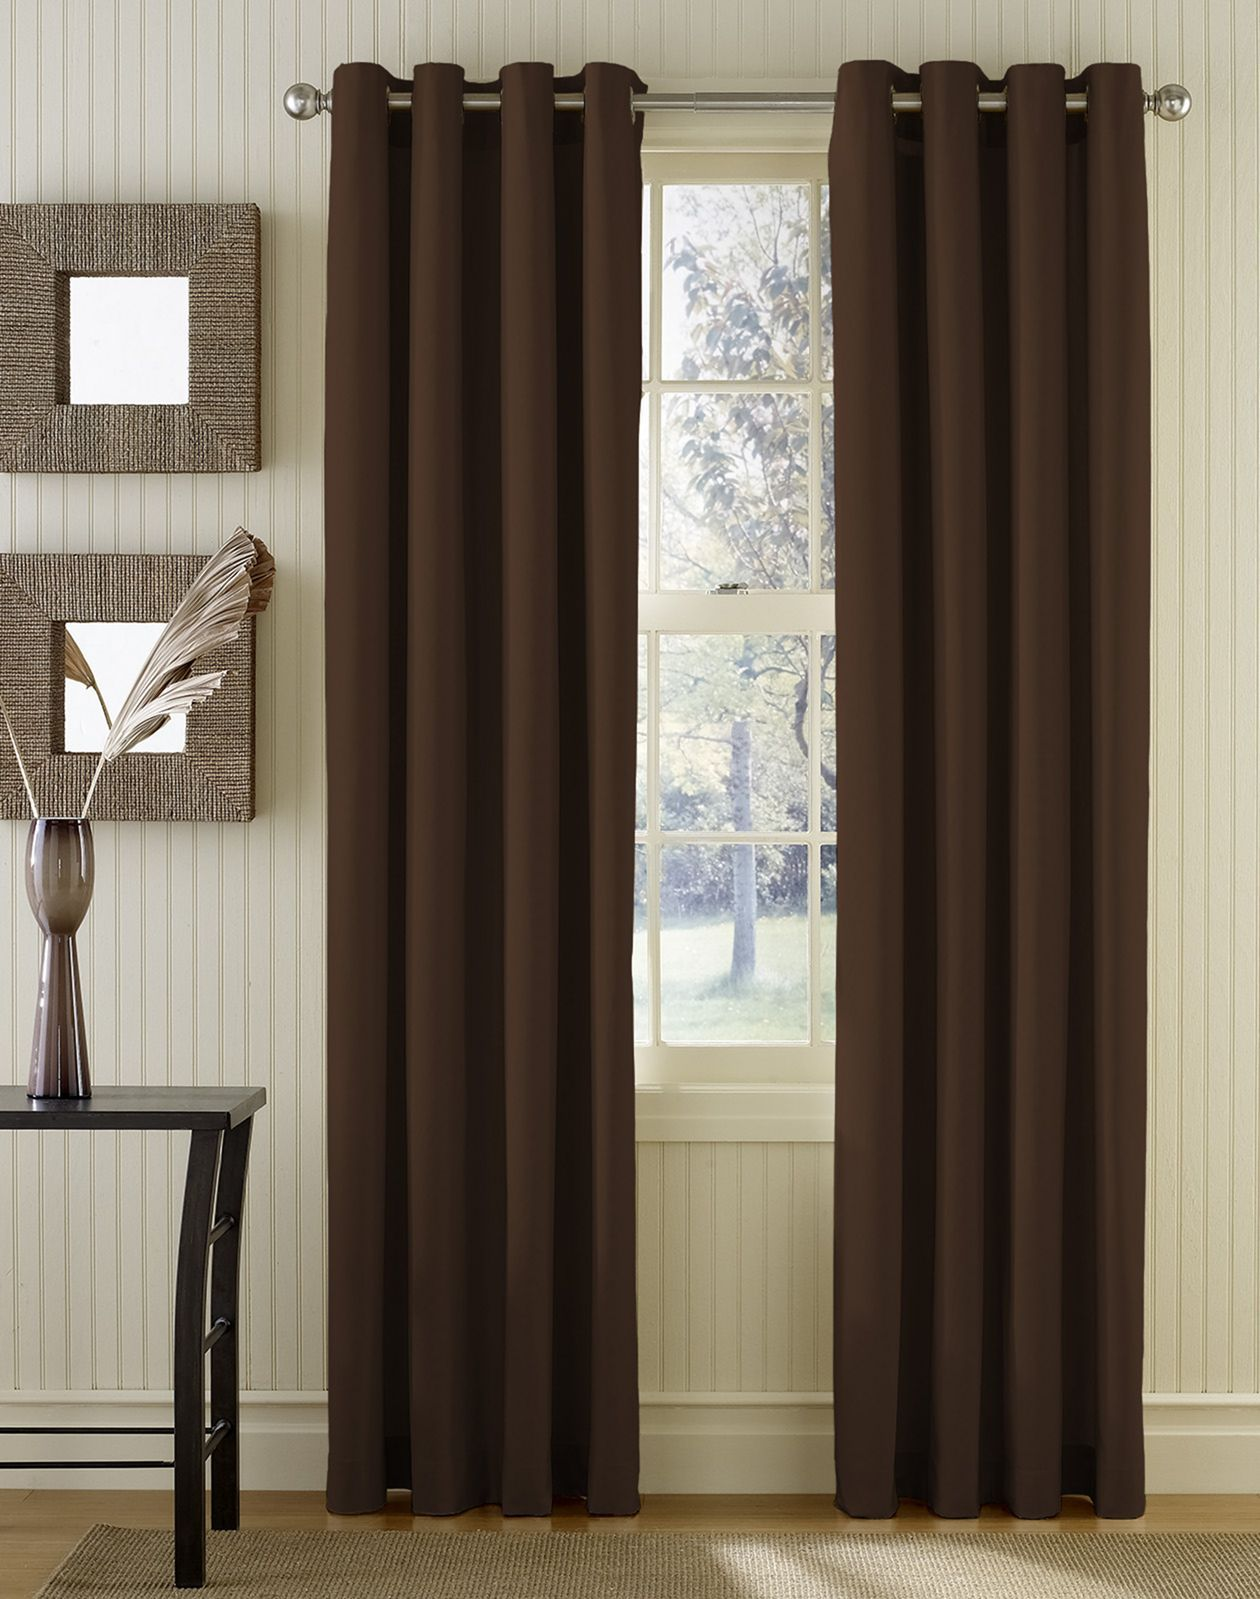 20 Amazing Ideas To Make Your Simple Houses Fell More Comfortable And Look Luxurious Curtains Living Room Curtains Living Room Modern Living Room Decor Curtains